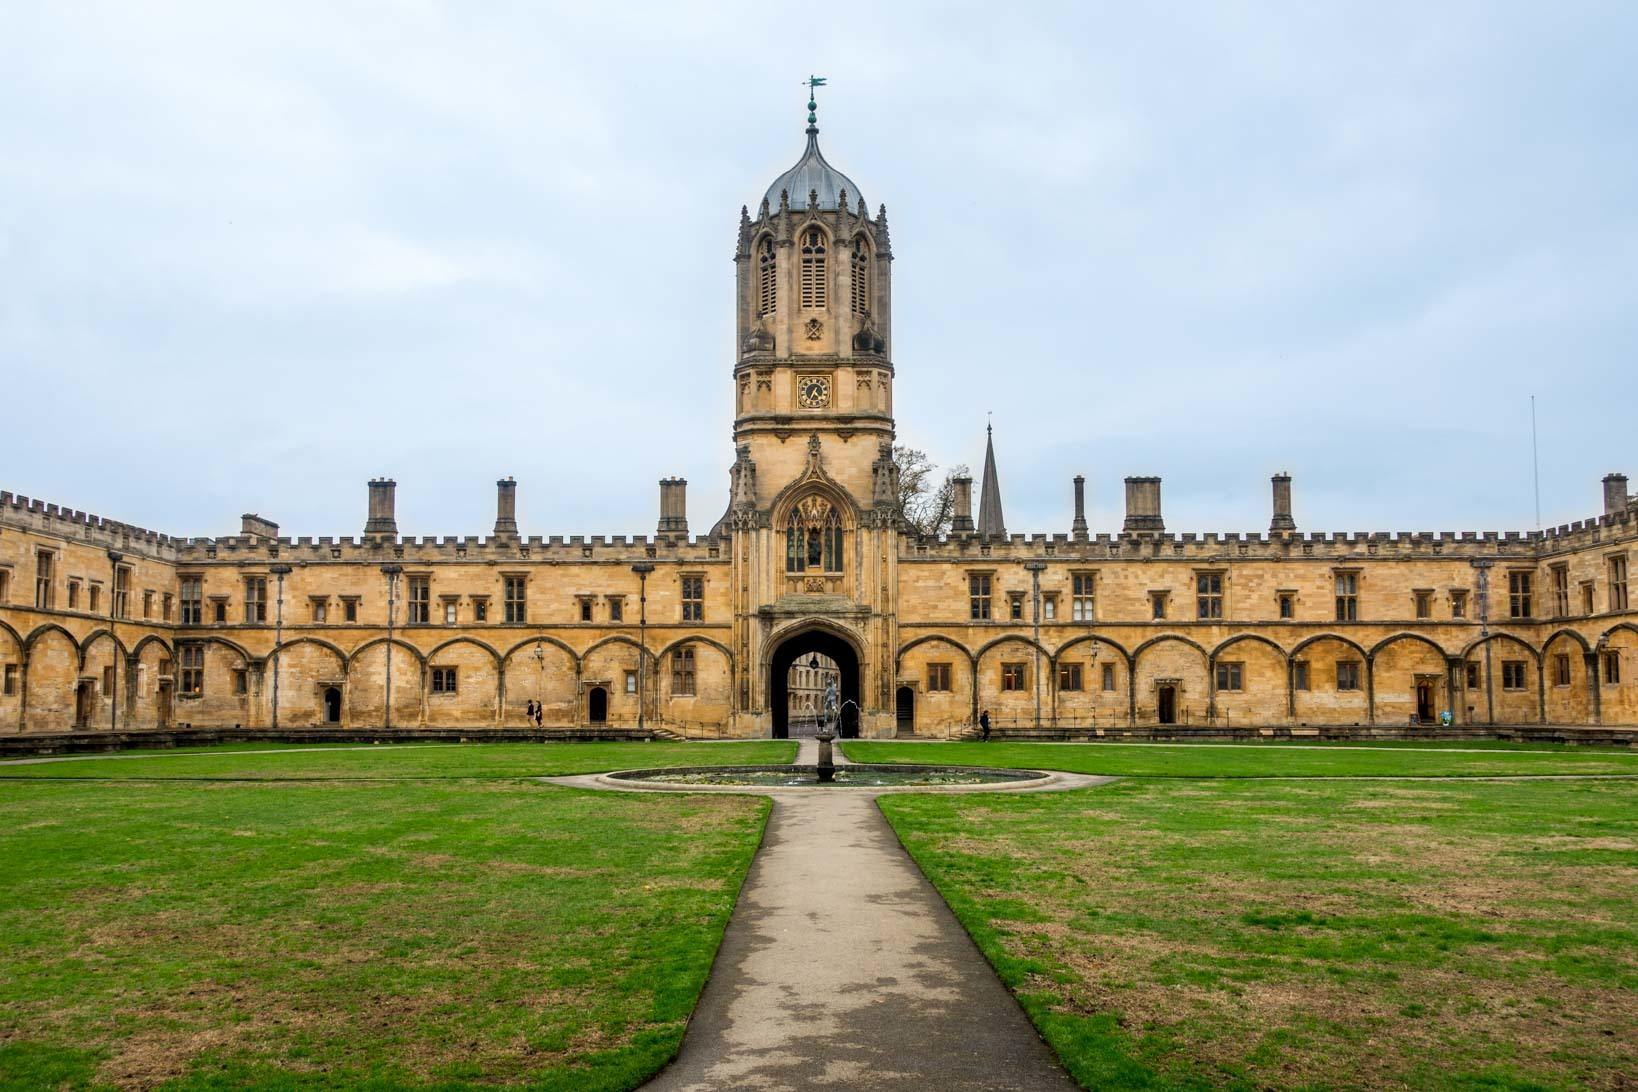 Visiting Christ Church and Tom Tower is one of the top Oxford things to do